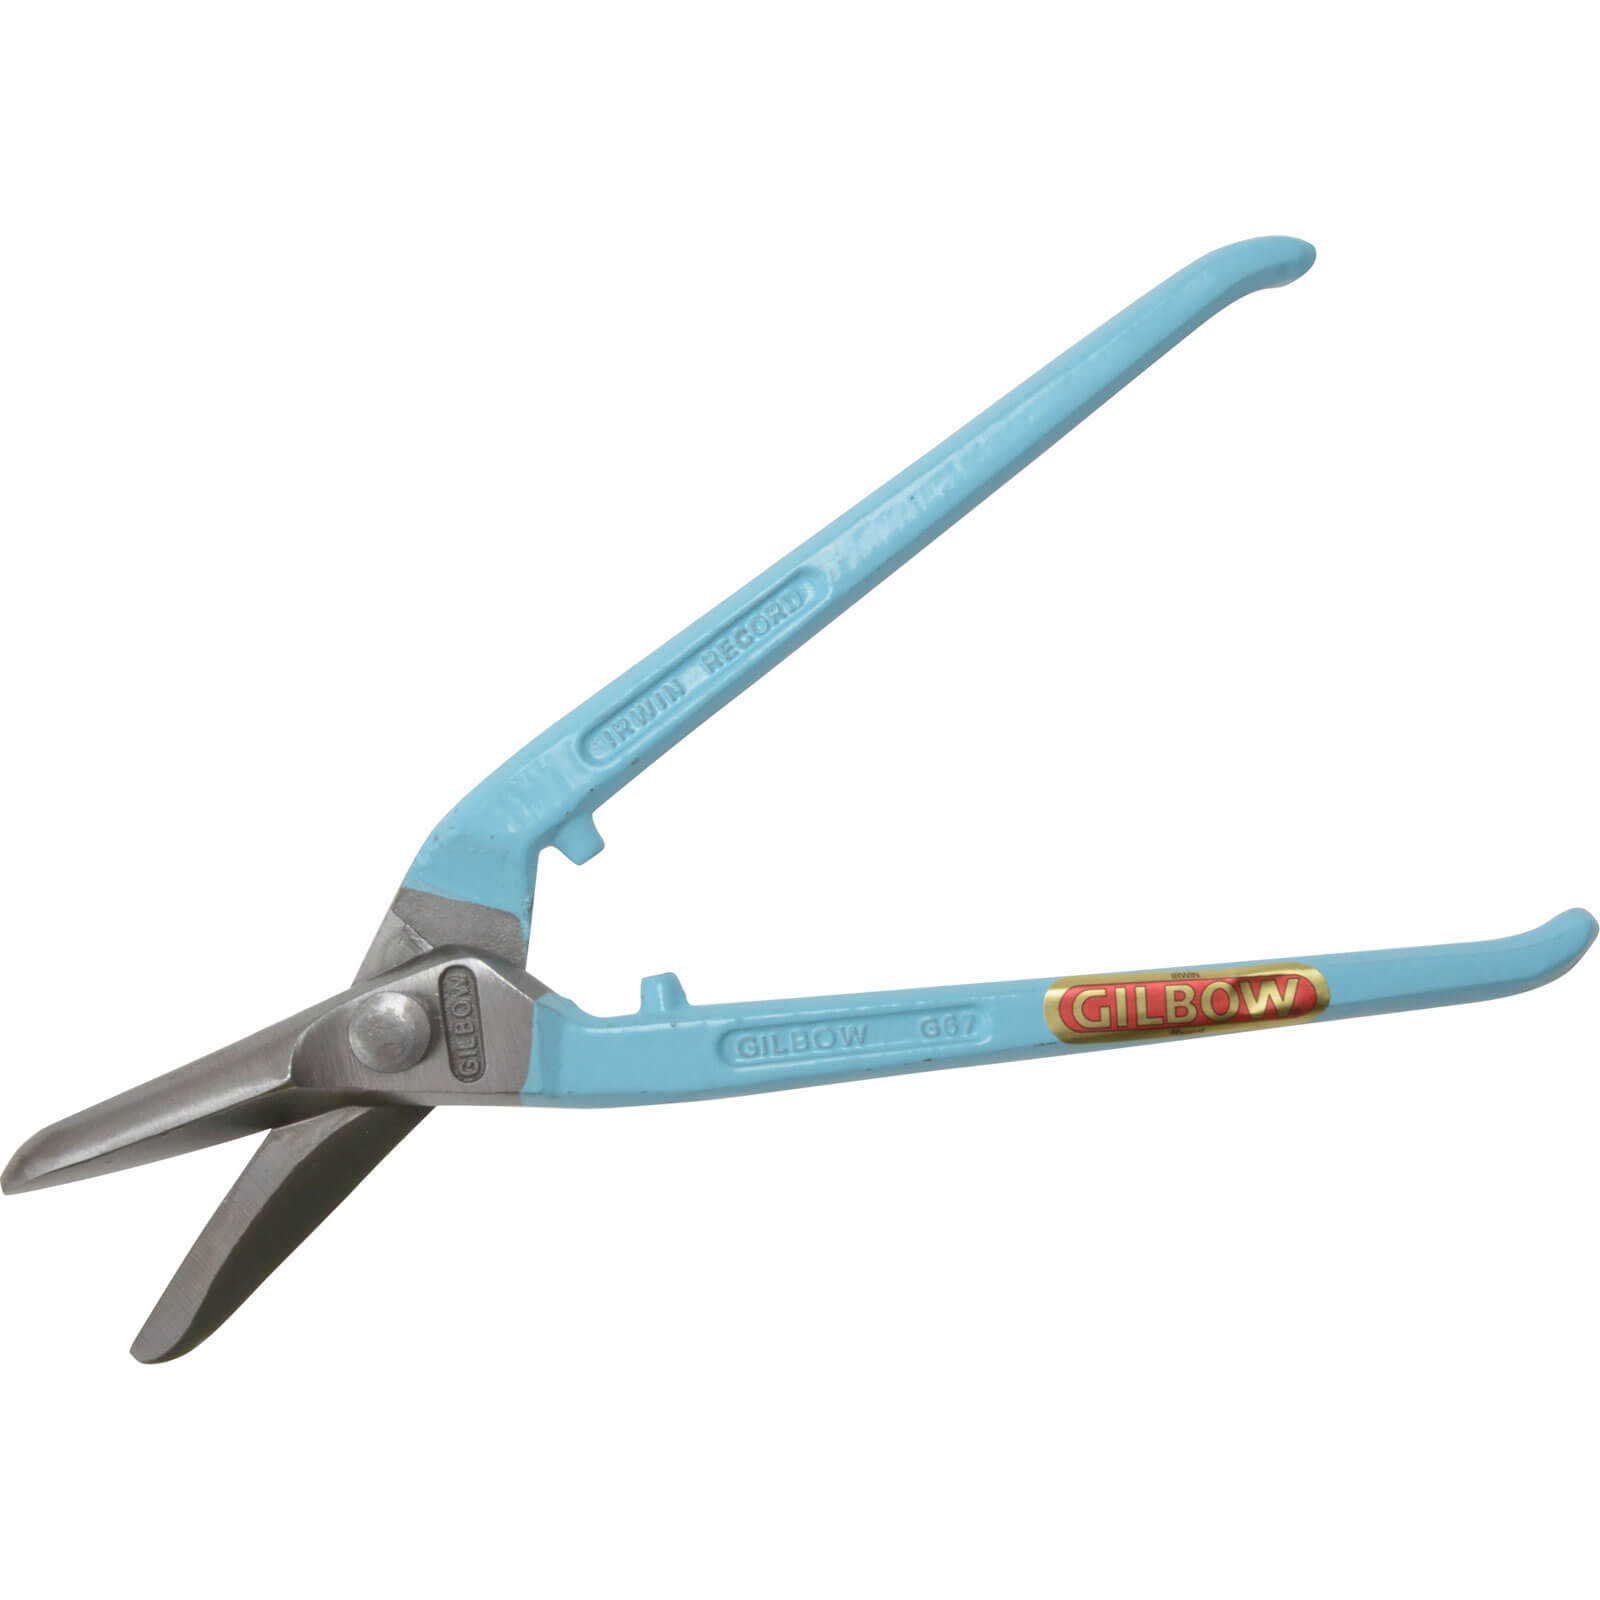 Image of Gilbow Left Hand Cranked Universal Tin Snip 280mm